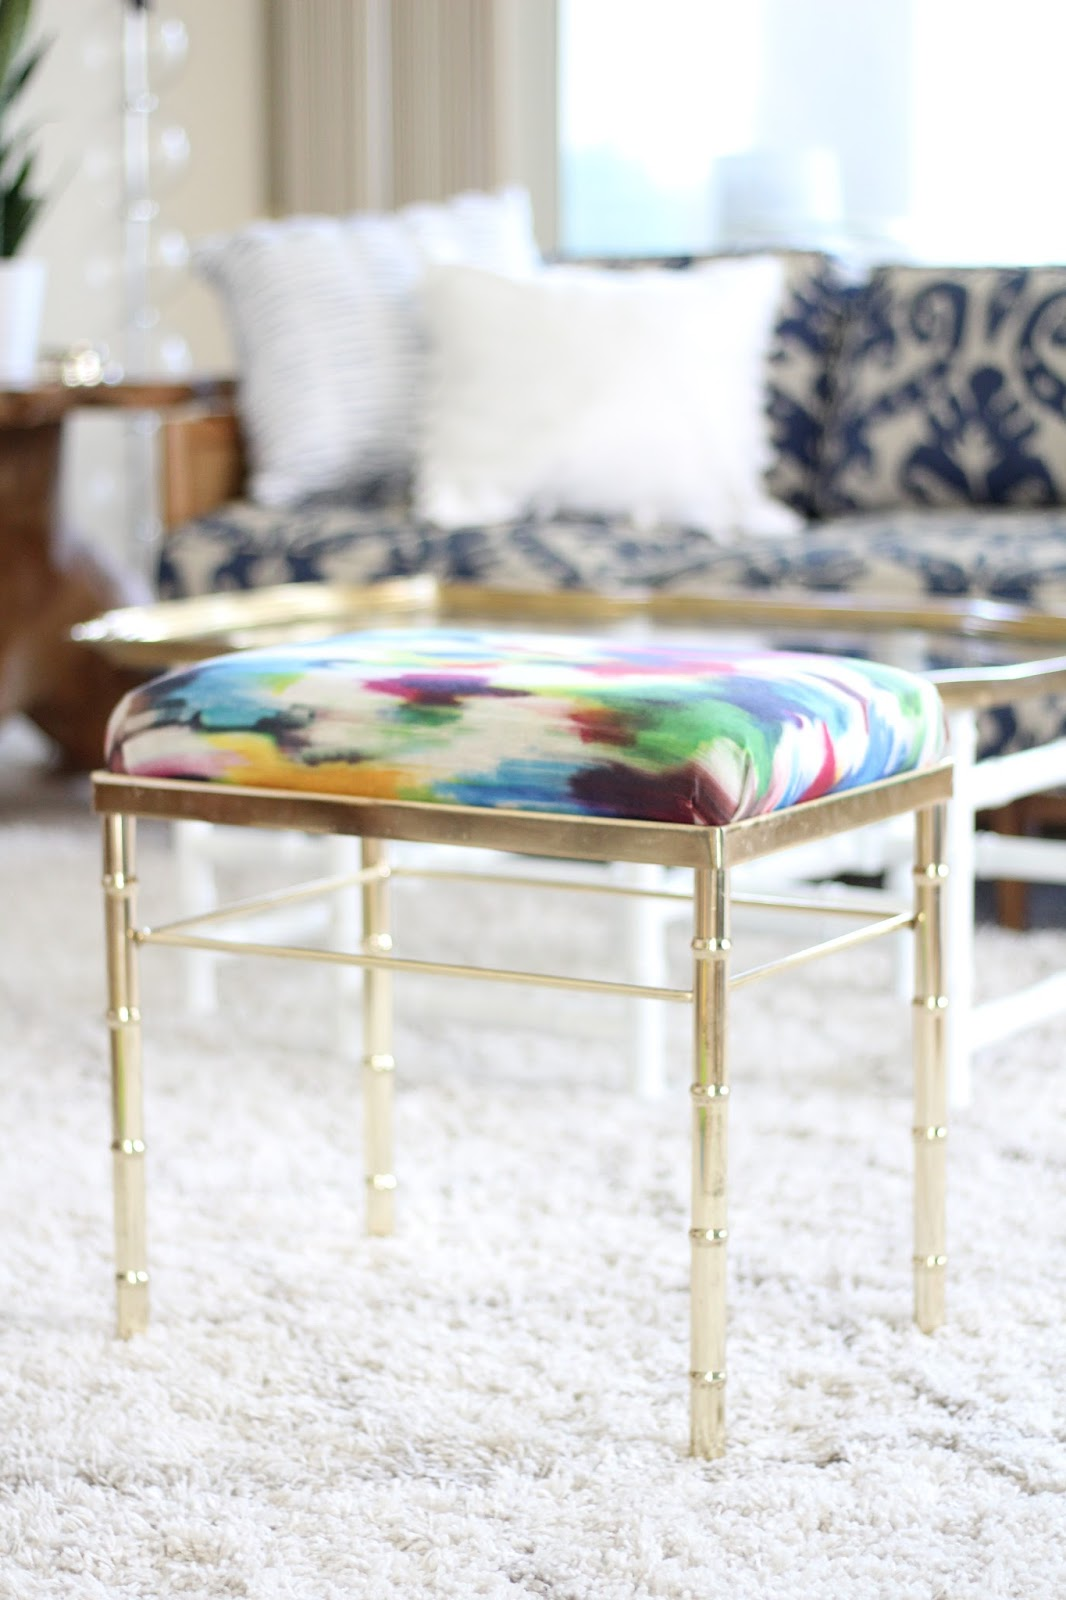 Life With A Dash Of Whimsy Diy Vanity Stool Reupholstery